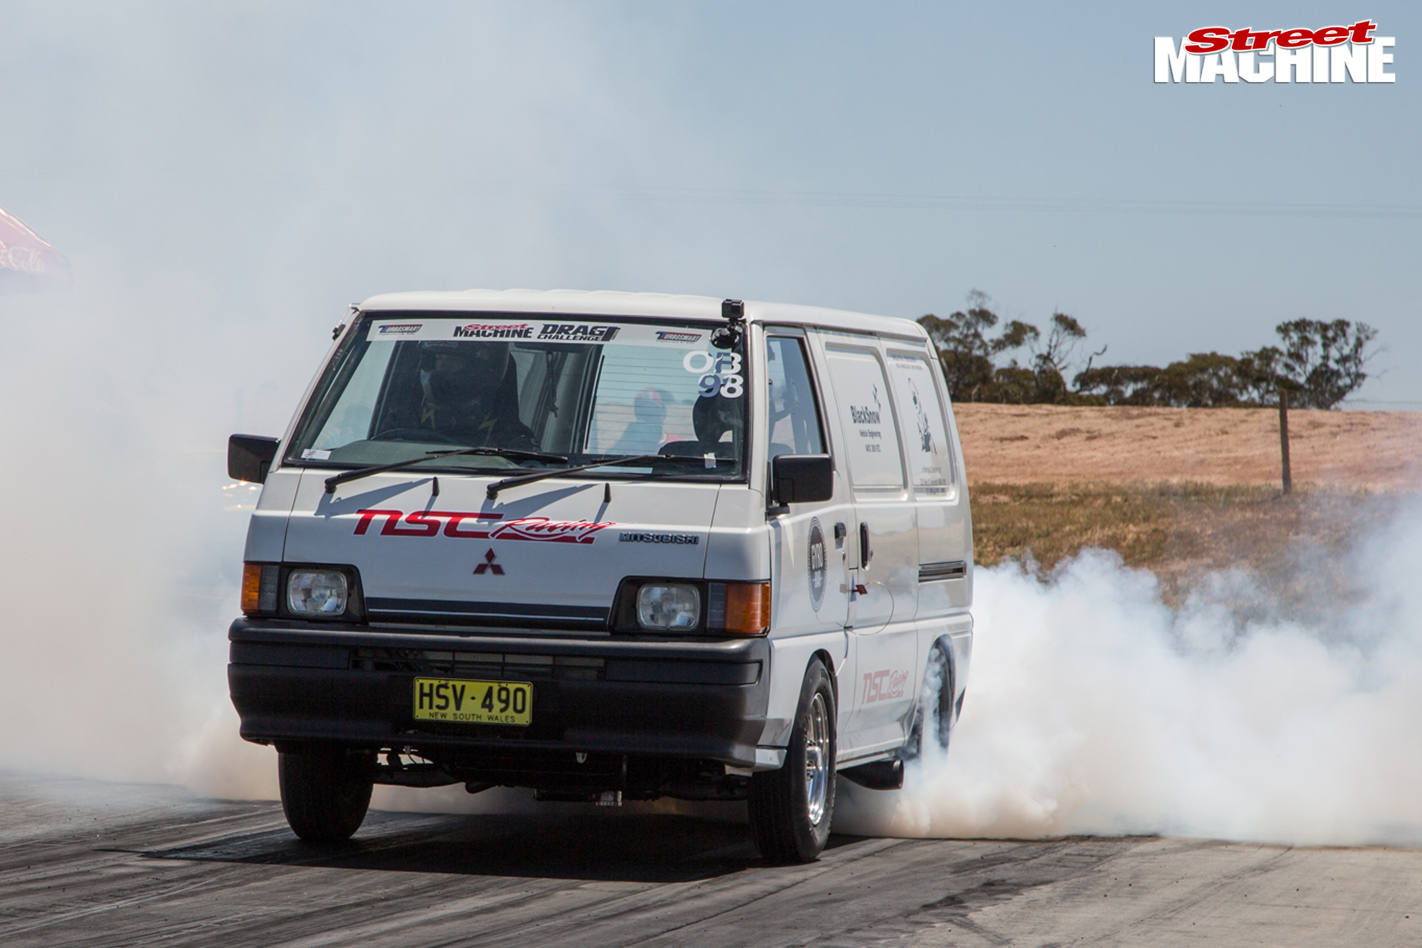 TURBO-LS-FORD-CAPRI-AND-TWIN-TURBO-LS-MITSUBISHI-EXPRESS-VAN-AT-DRAG-CHALLENGE-van -2